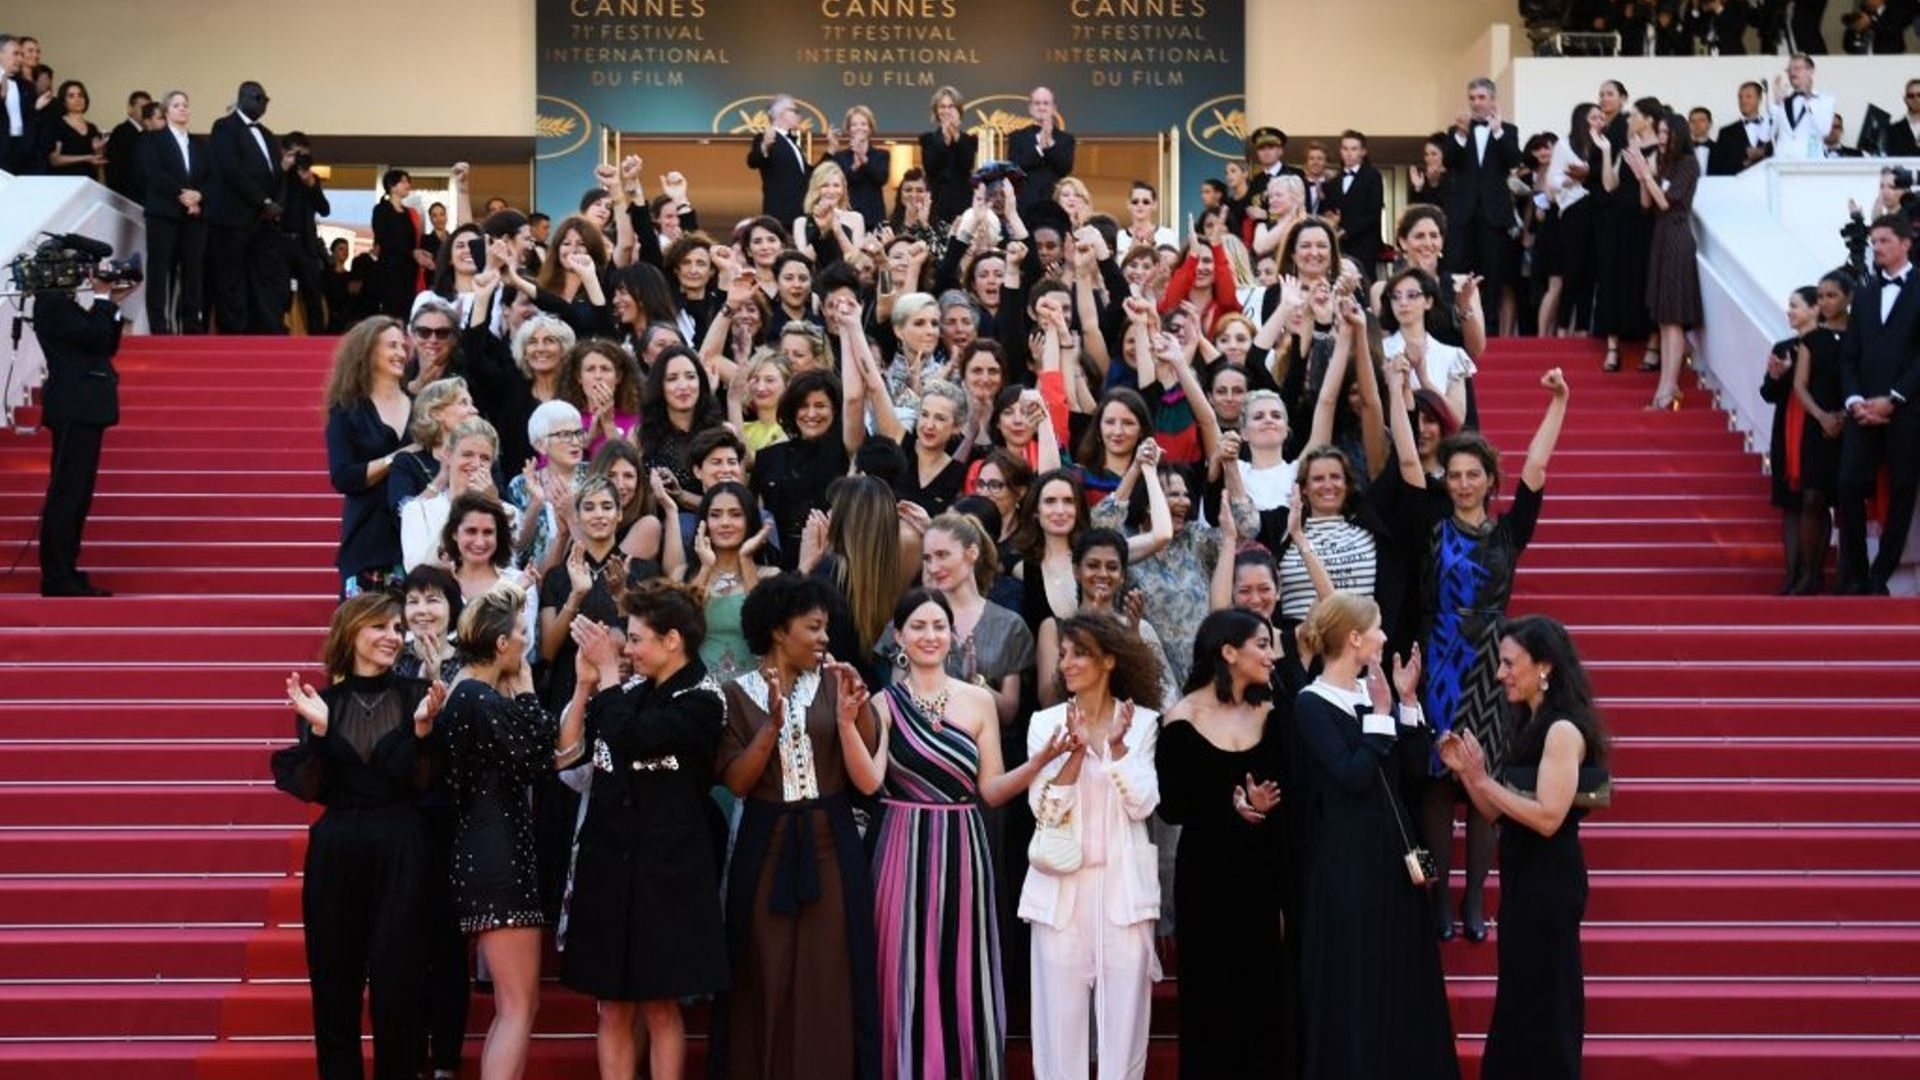 It Is A Woman's World: Cairo Film Festival To Sign Pledge Of Equality In Cinema